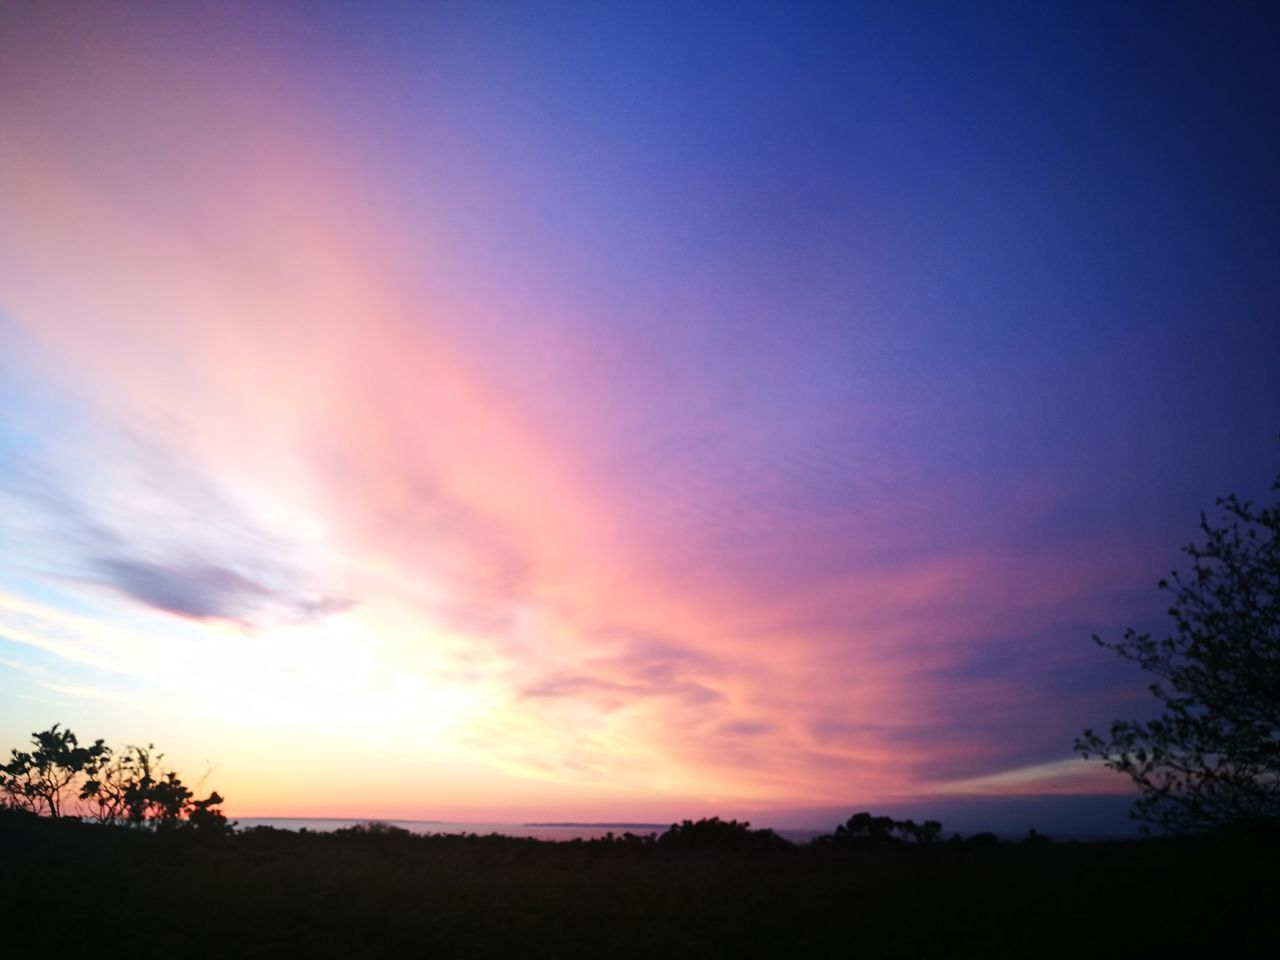 sunset, silhouette, tranquil scene, scenics, nature, tranquility, tree, beauty in nature, sky, no people, landscape, dusk, cloud - sky, outdoors, day